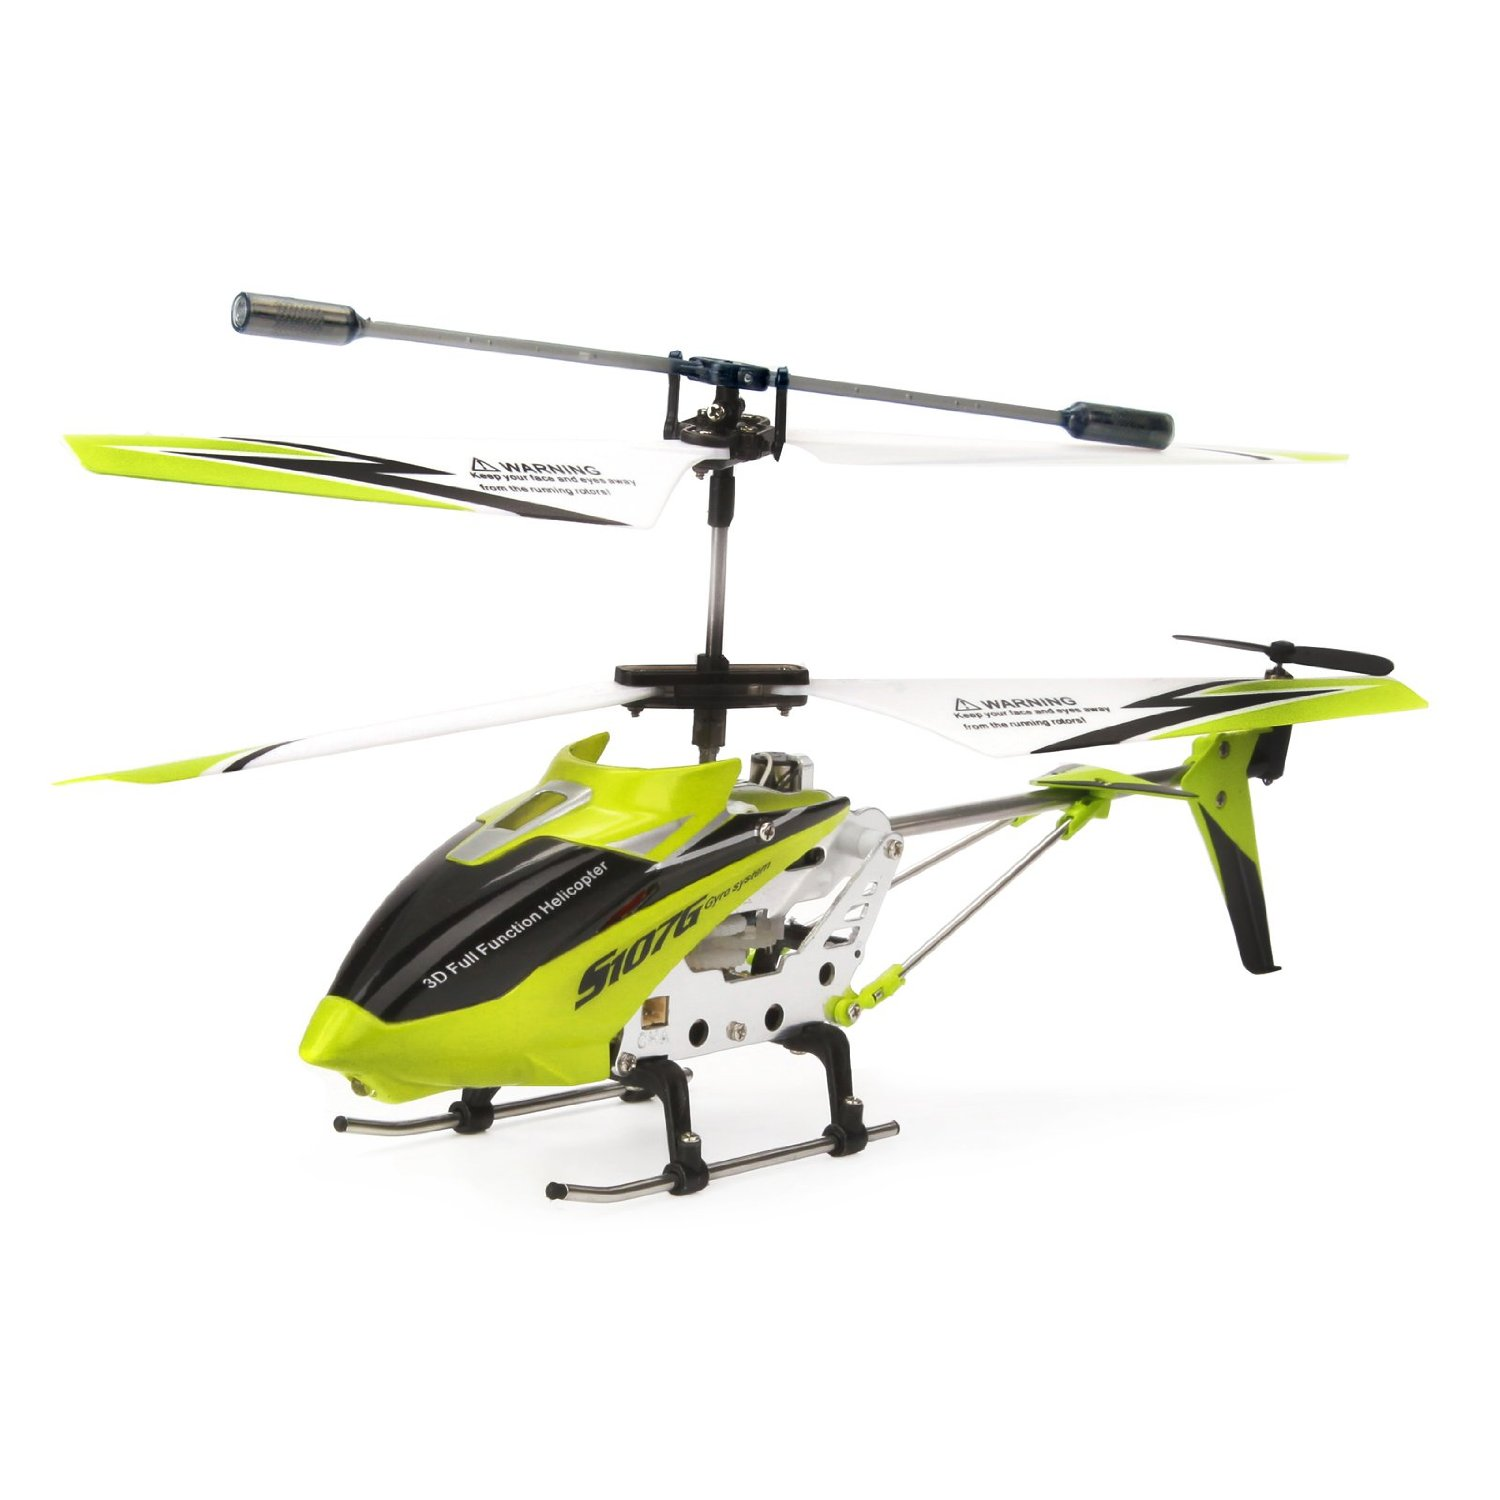 remote control helicopter toys r us with Syma S107s107g 3 5 Channel Rc Helicopter With Gyro on 452671165 further Rc Toys For Kids furthermore Rc Boat Toys also 32839794122 together with 12 Toys 1980s Didnt Take.